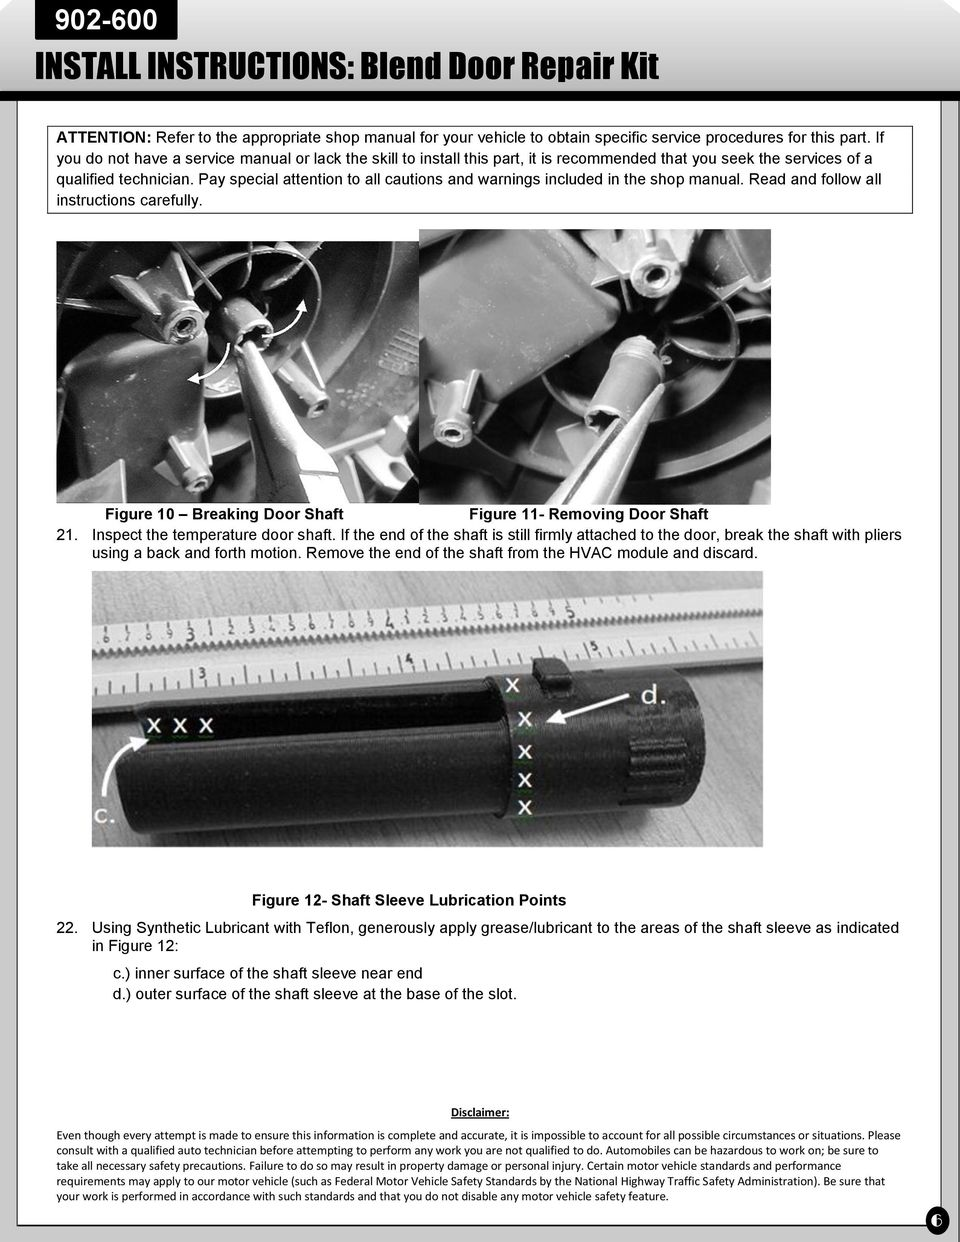 INSTALL INSTRUCTIONS: Blend Door Repair Kit - PDF